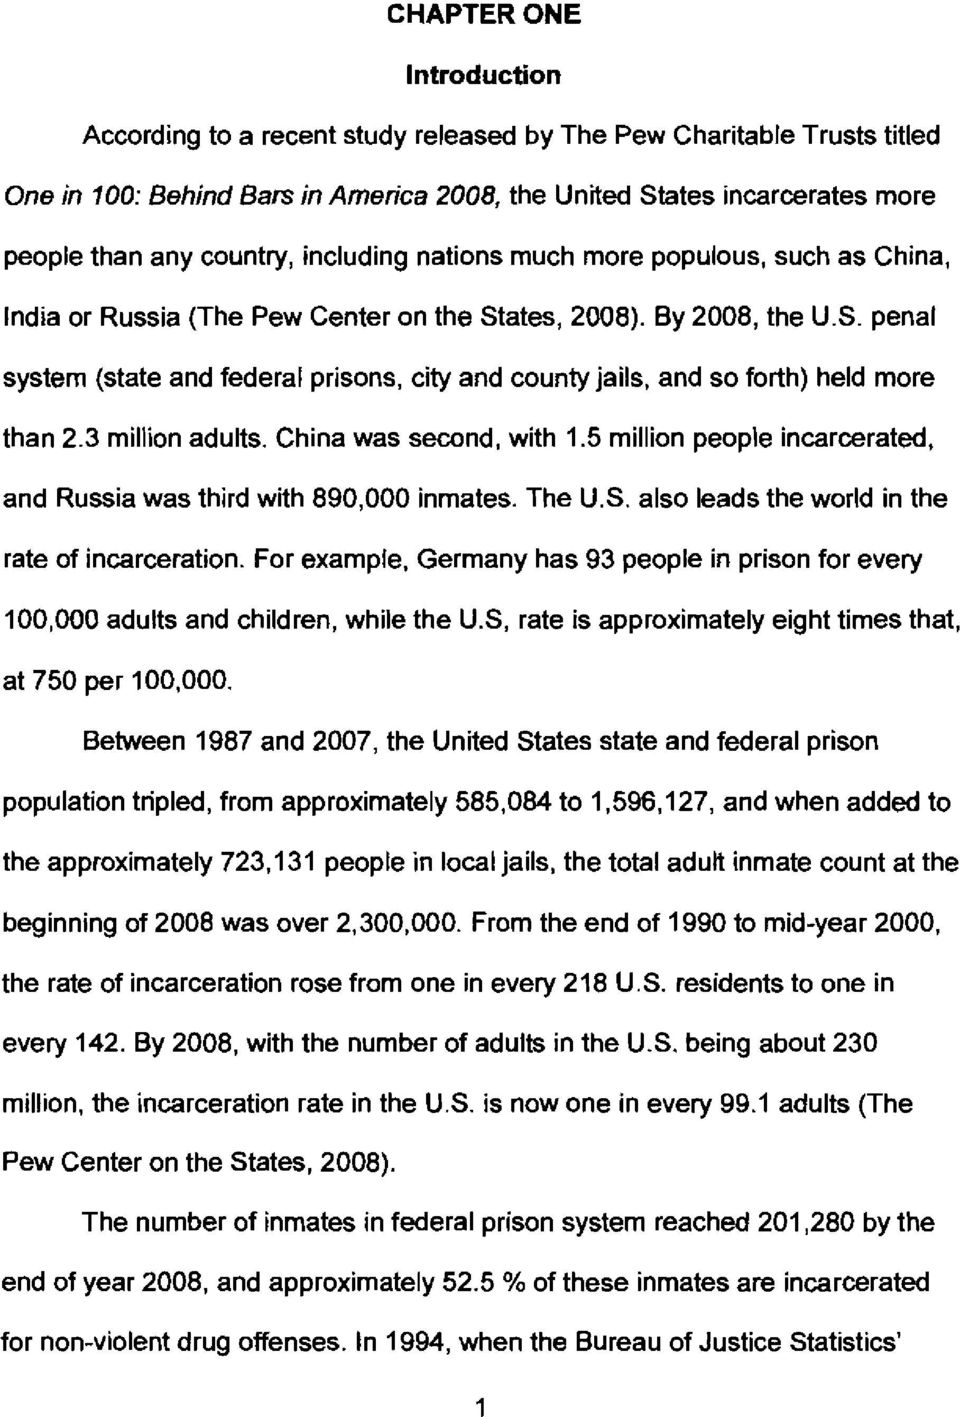 3 million adults. China was second, with 1.5 million people incarcerated, and Russia was third with 890,000 inmates. The U.S. also leads the world in the rate of incarceration. For example.